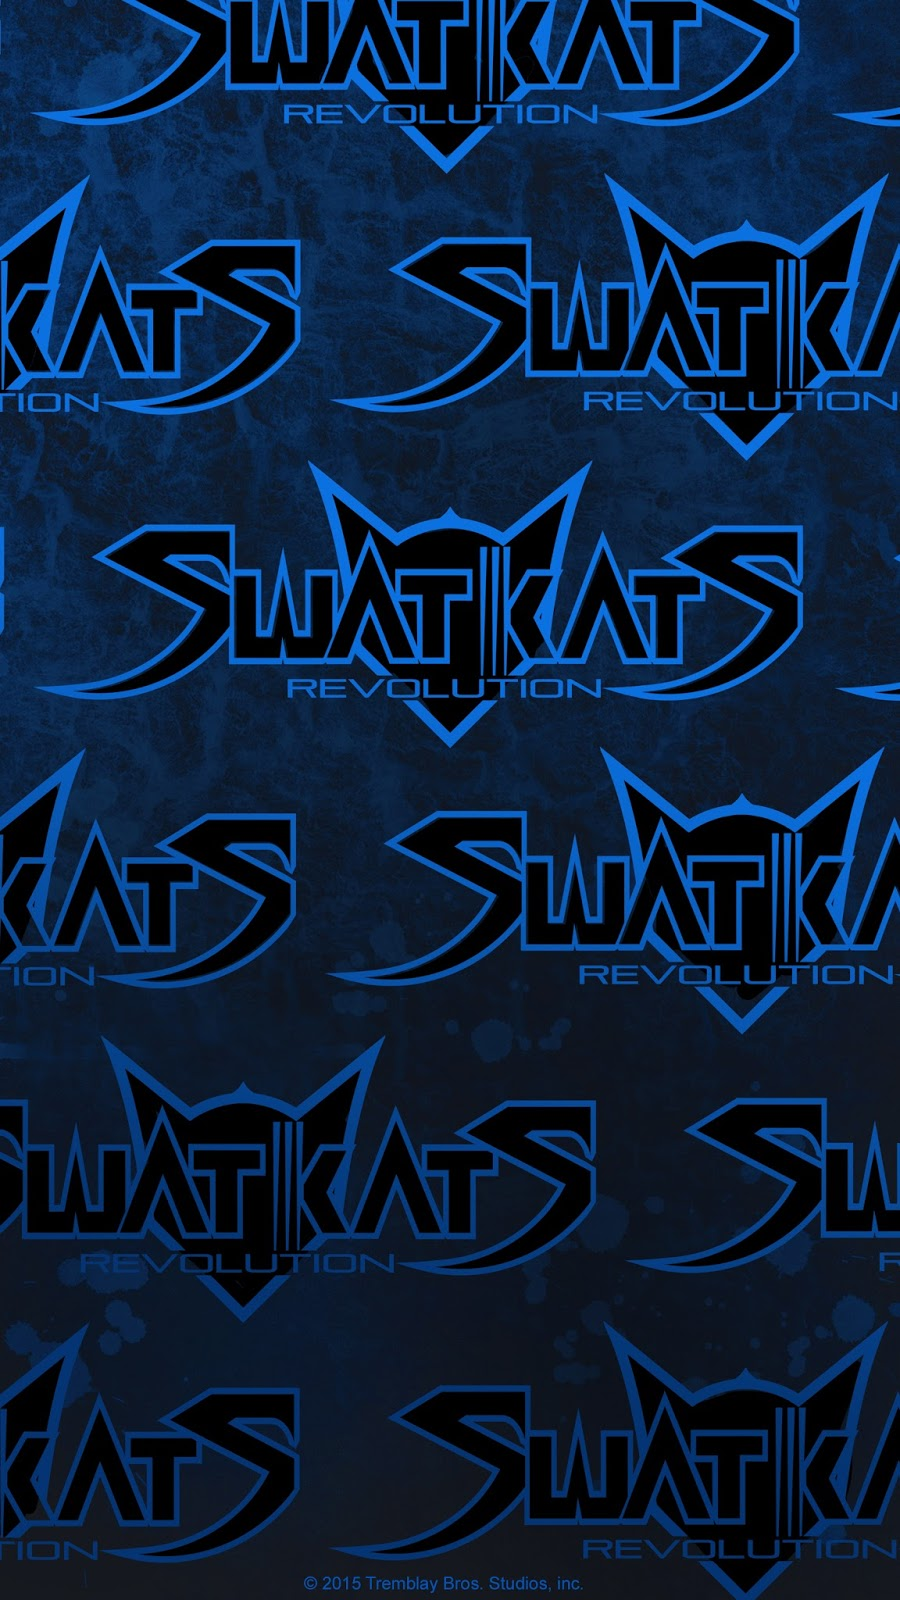 Mobile Wallpapers on swat